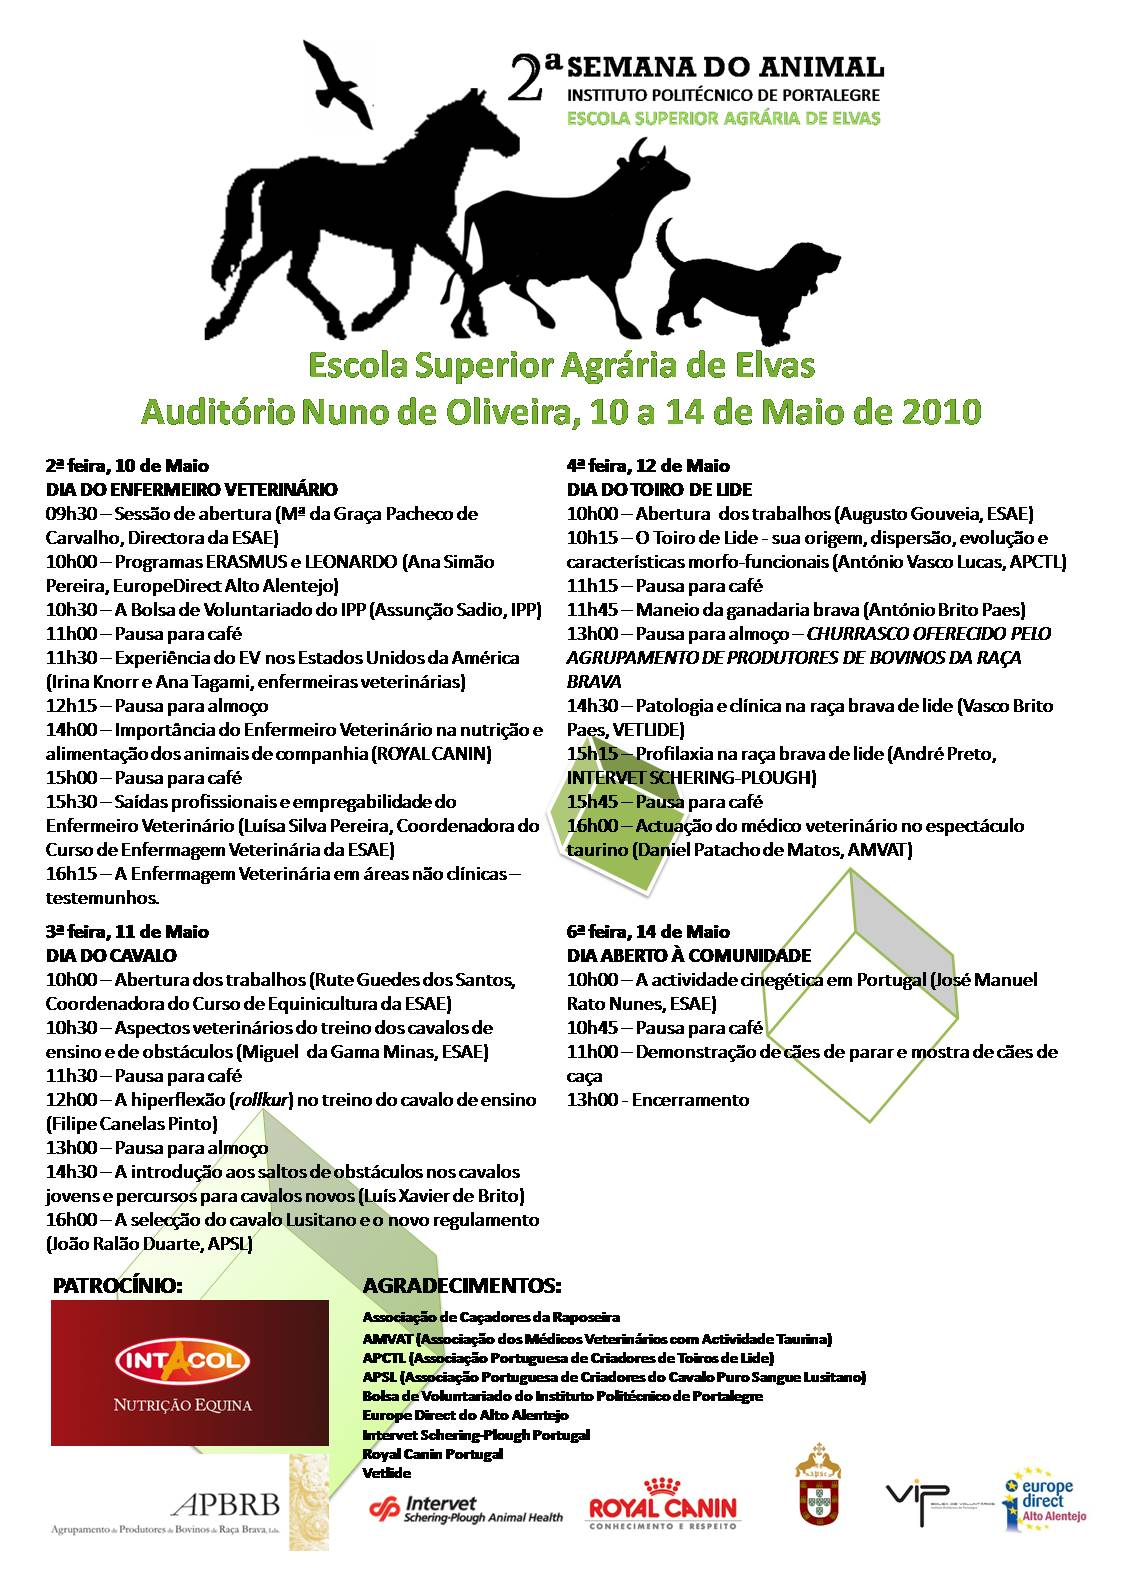 Elvas:2ª Semana do Animal